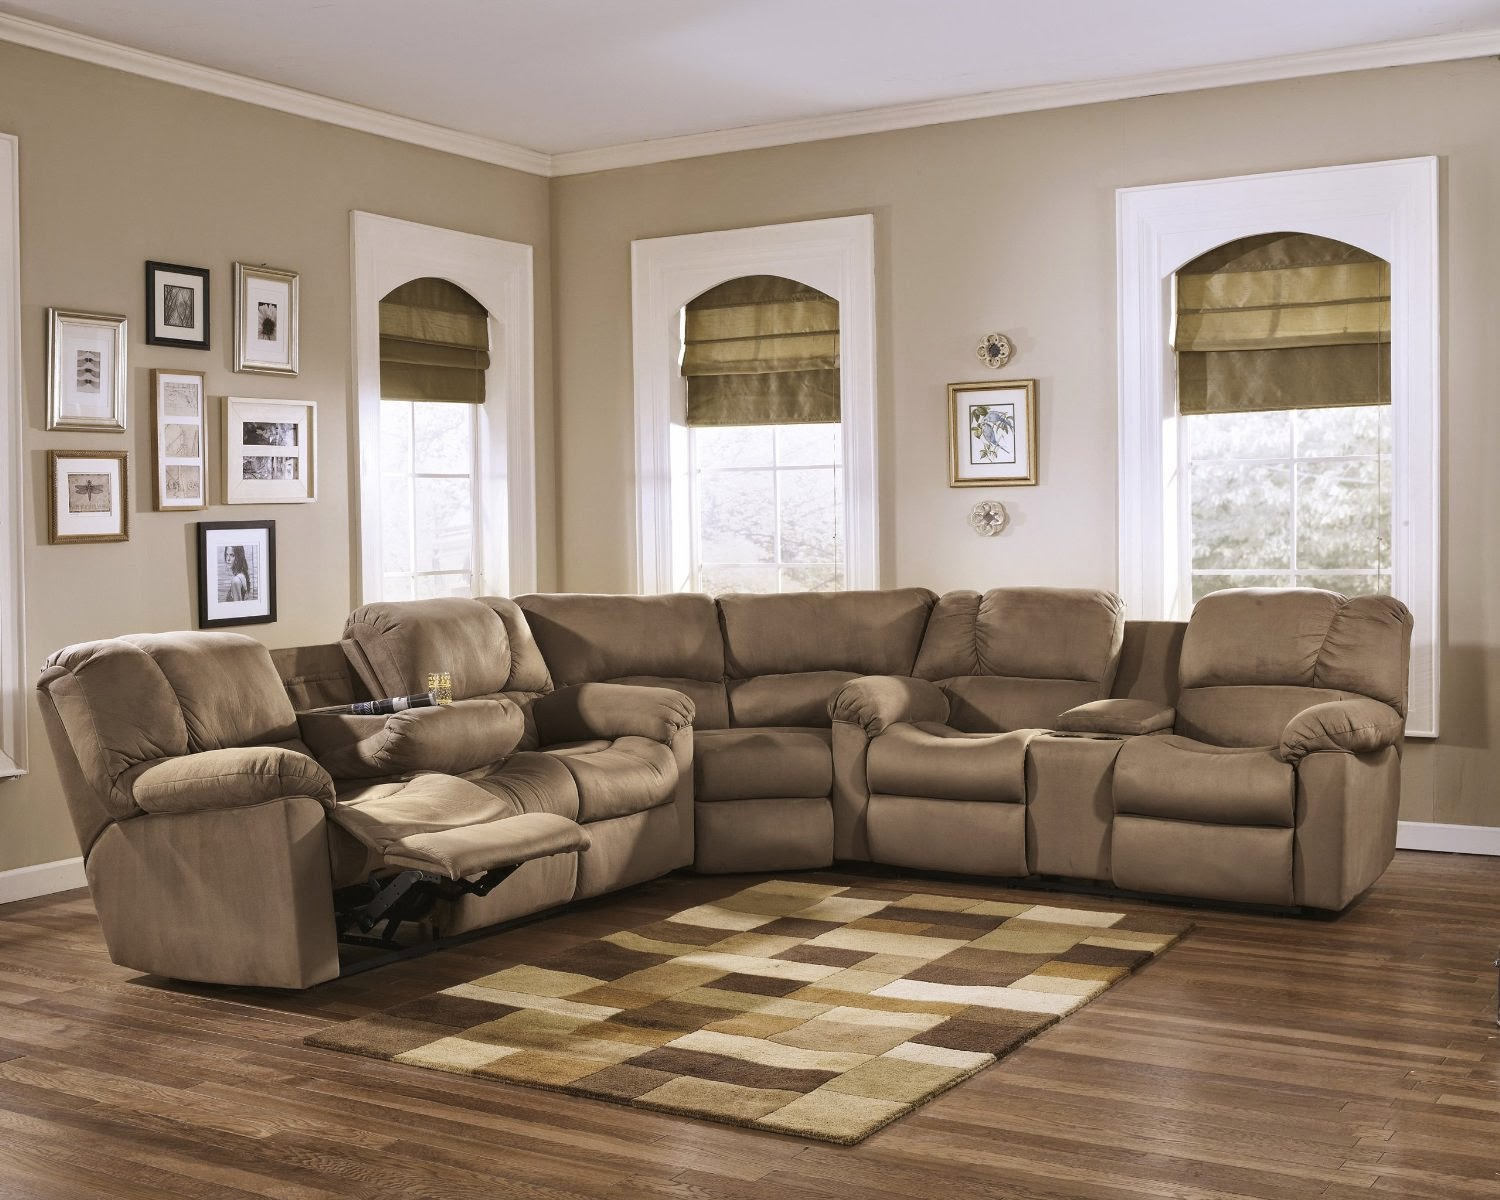 Best Leather Reclining Sofa Brands Reviews: Fabric ...